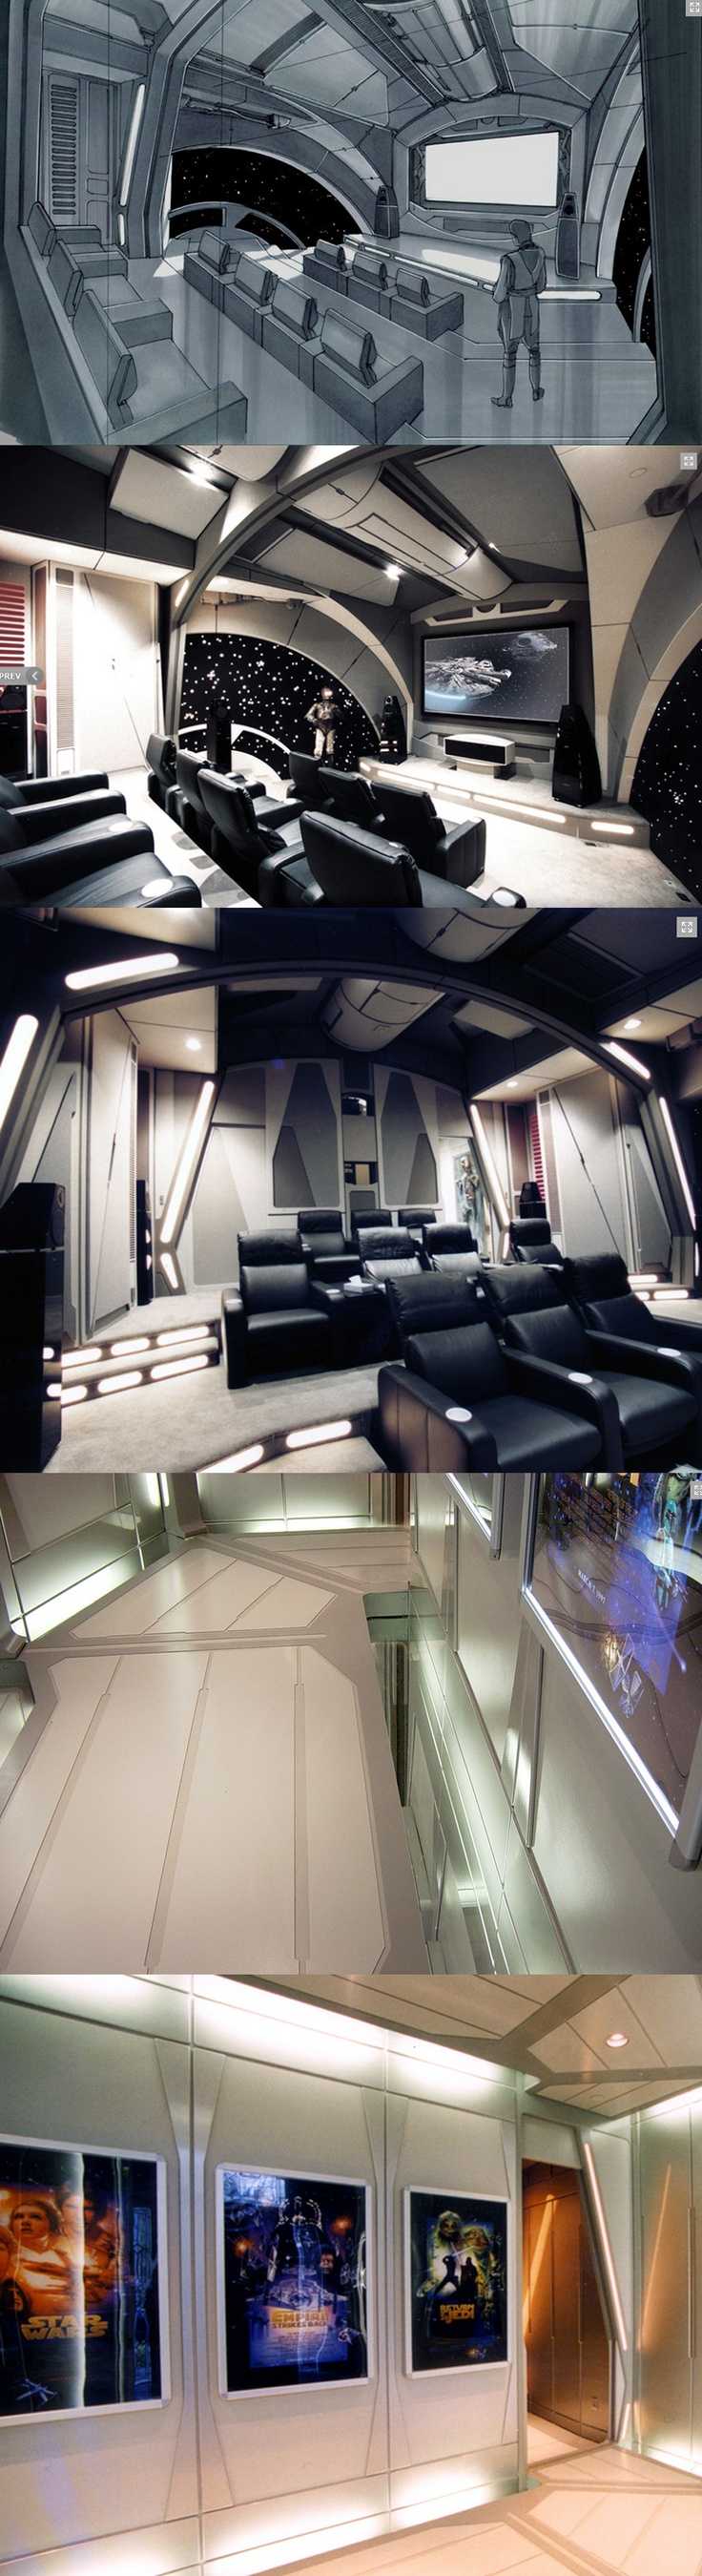 Batman \u0026 Pirates Themed Home Movie Theaters | Movie rooms, Cave ...